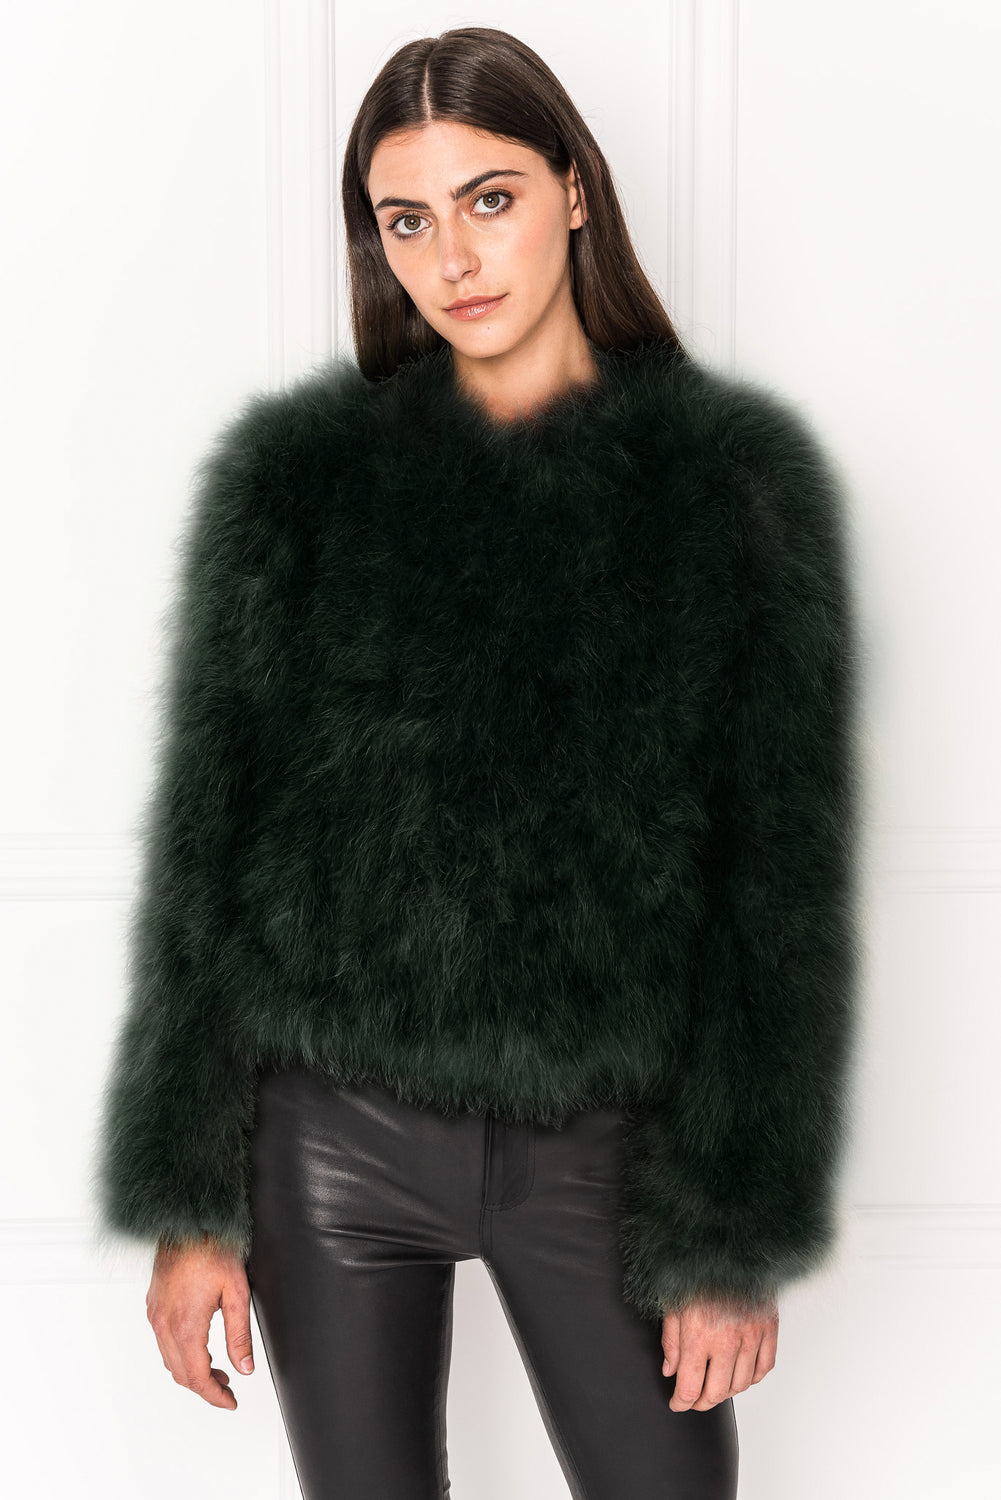 DEORA Green Feather Jacket